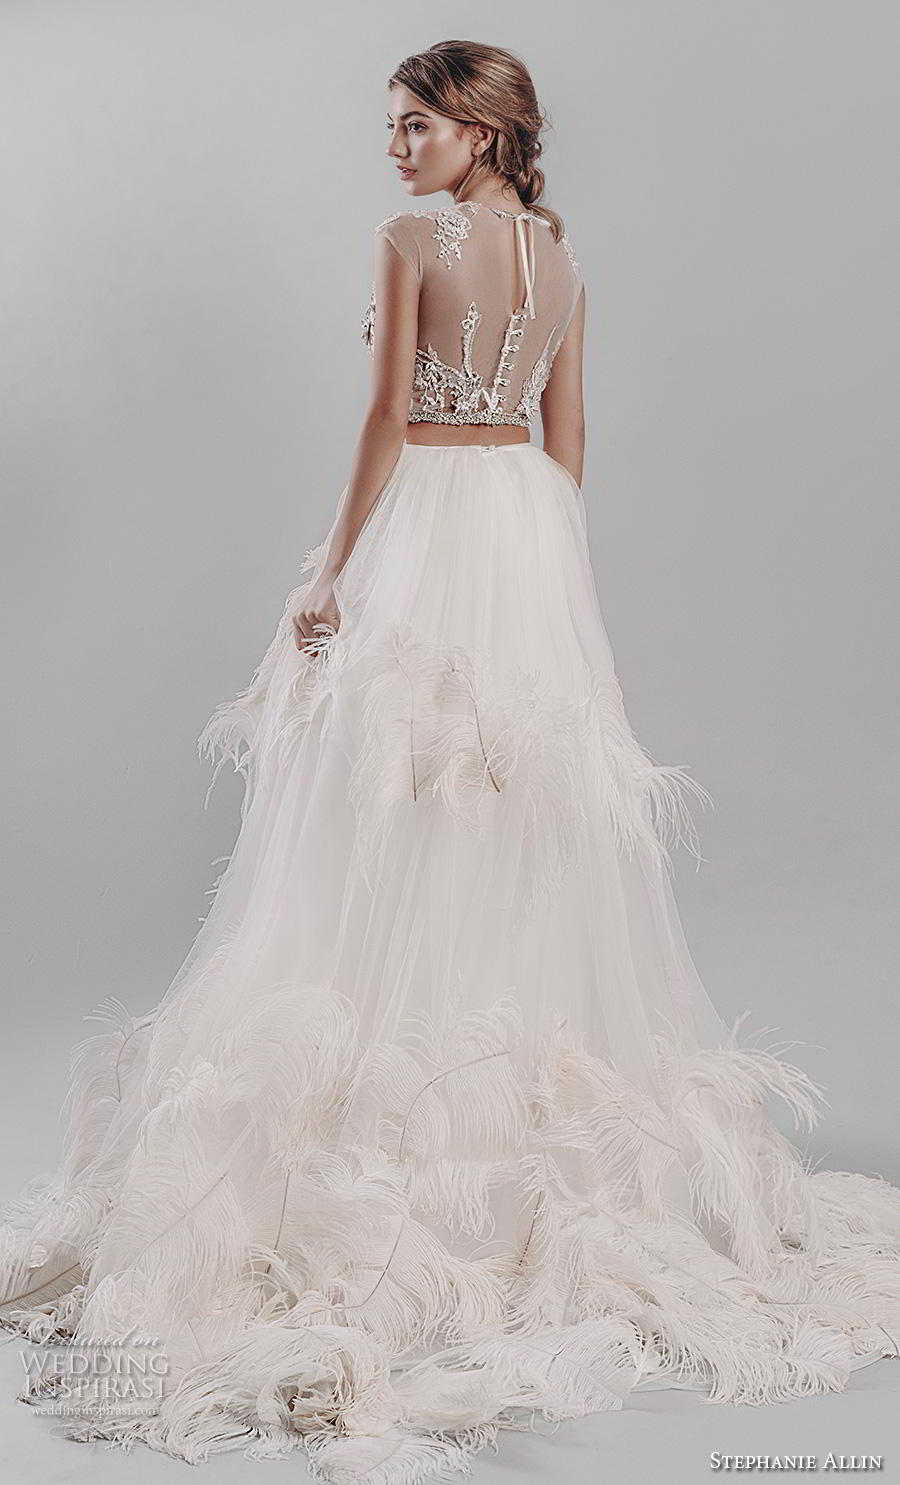 stephanie allin 2019 bridal cap sleeves jewel neck heavily embellished bodice ruffled skirt glitzy romantic glamorous a  line wedding dress sheer back (1) bv